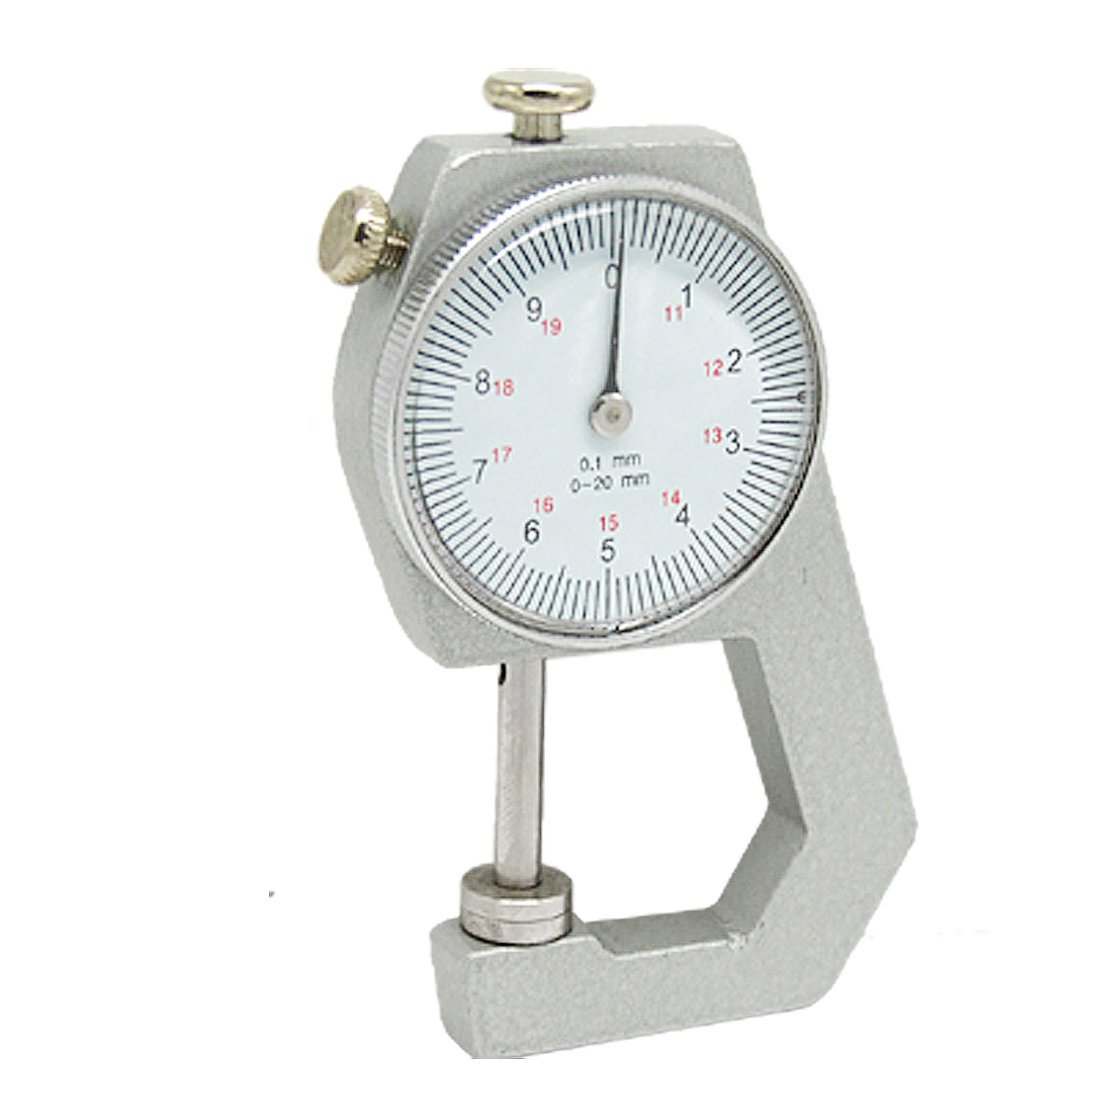 SODIAL(R) Pocket Thickness Measurement Gauge Gage Tool 0 to 20mm